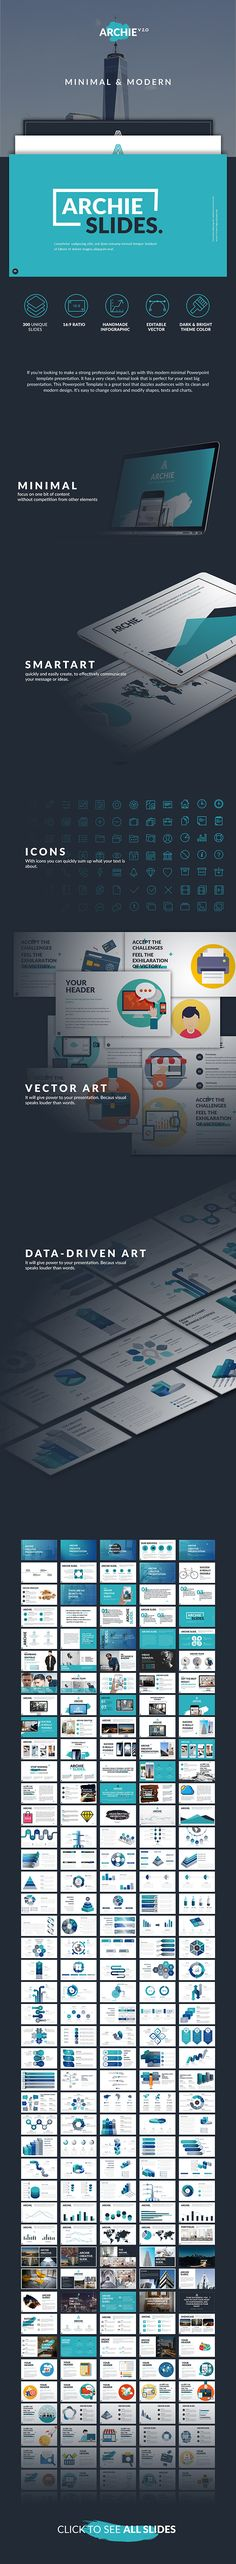 Archie Creative Google Slide  #powerpoint #pptx #presentation • Available here → http://graphicriver.net/item/archie-creative-google-slide/15870565?ref=pxcr